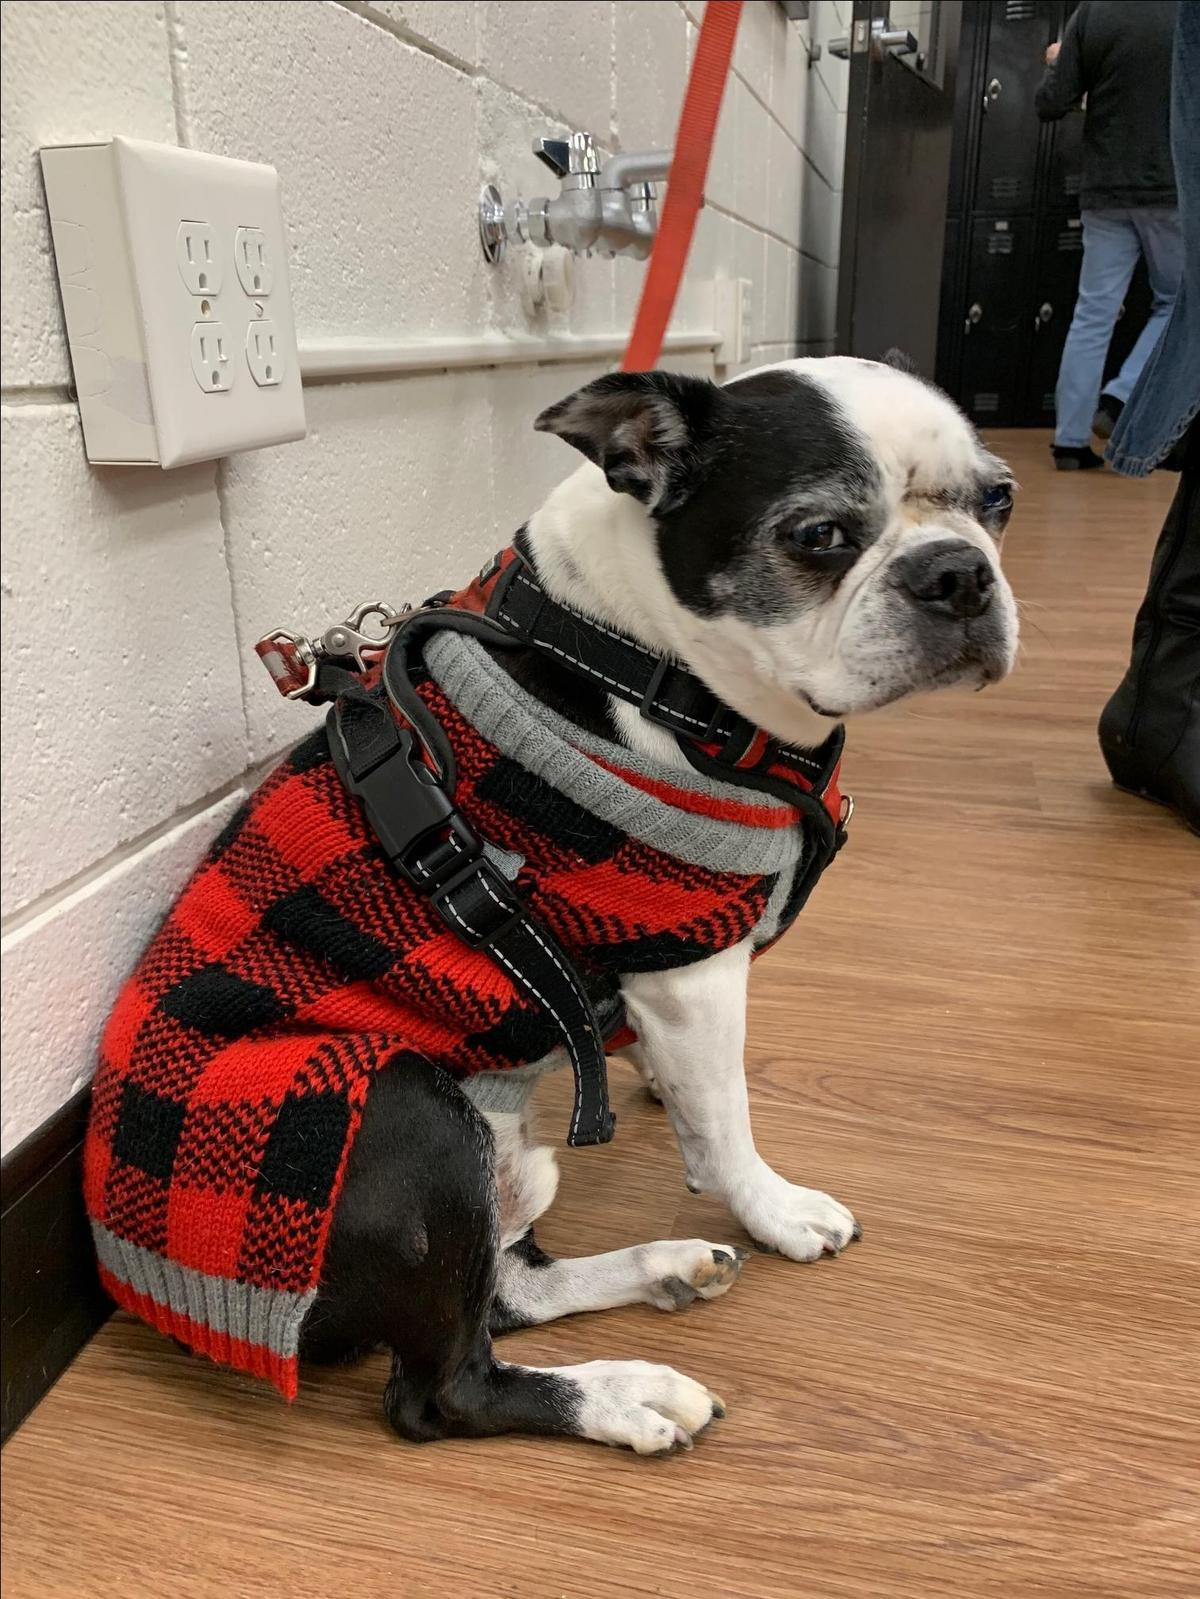 A Boston Terrier wearing an ugly Christmas sweater